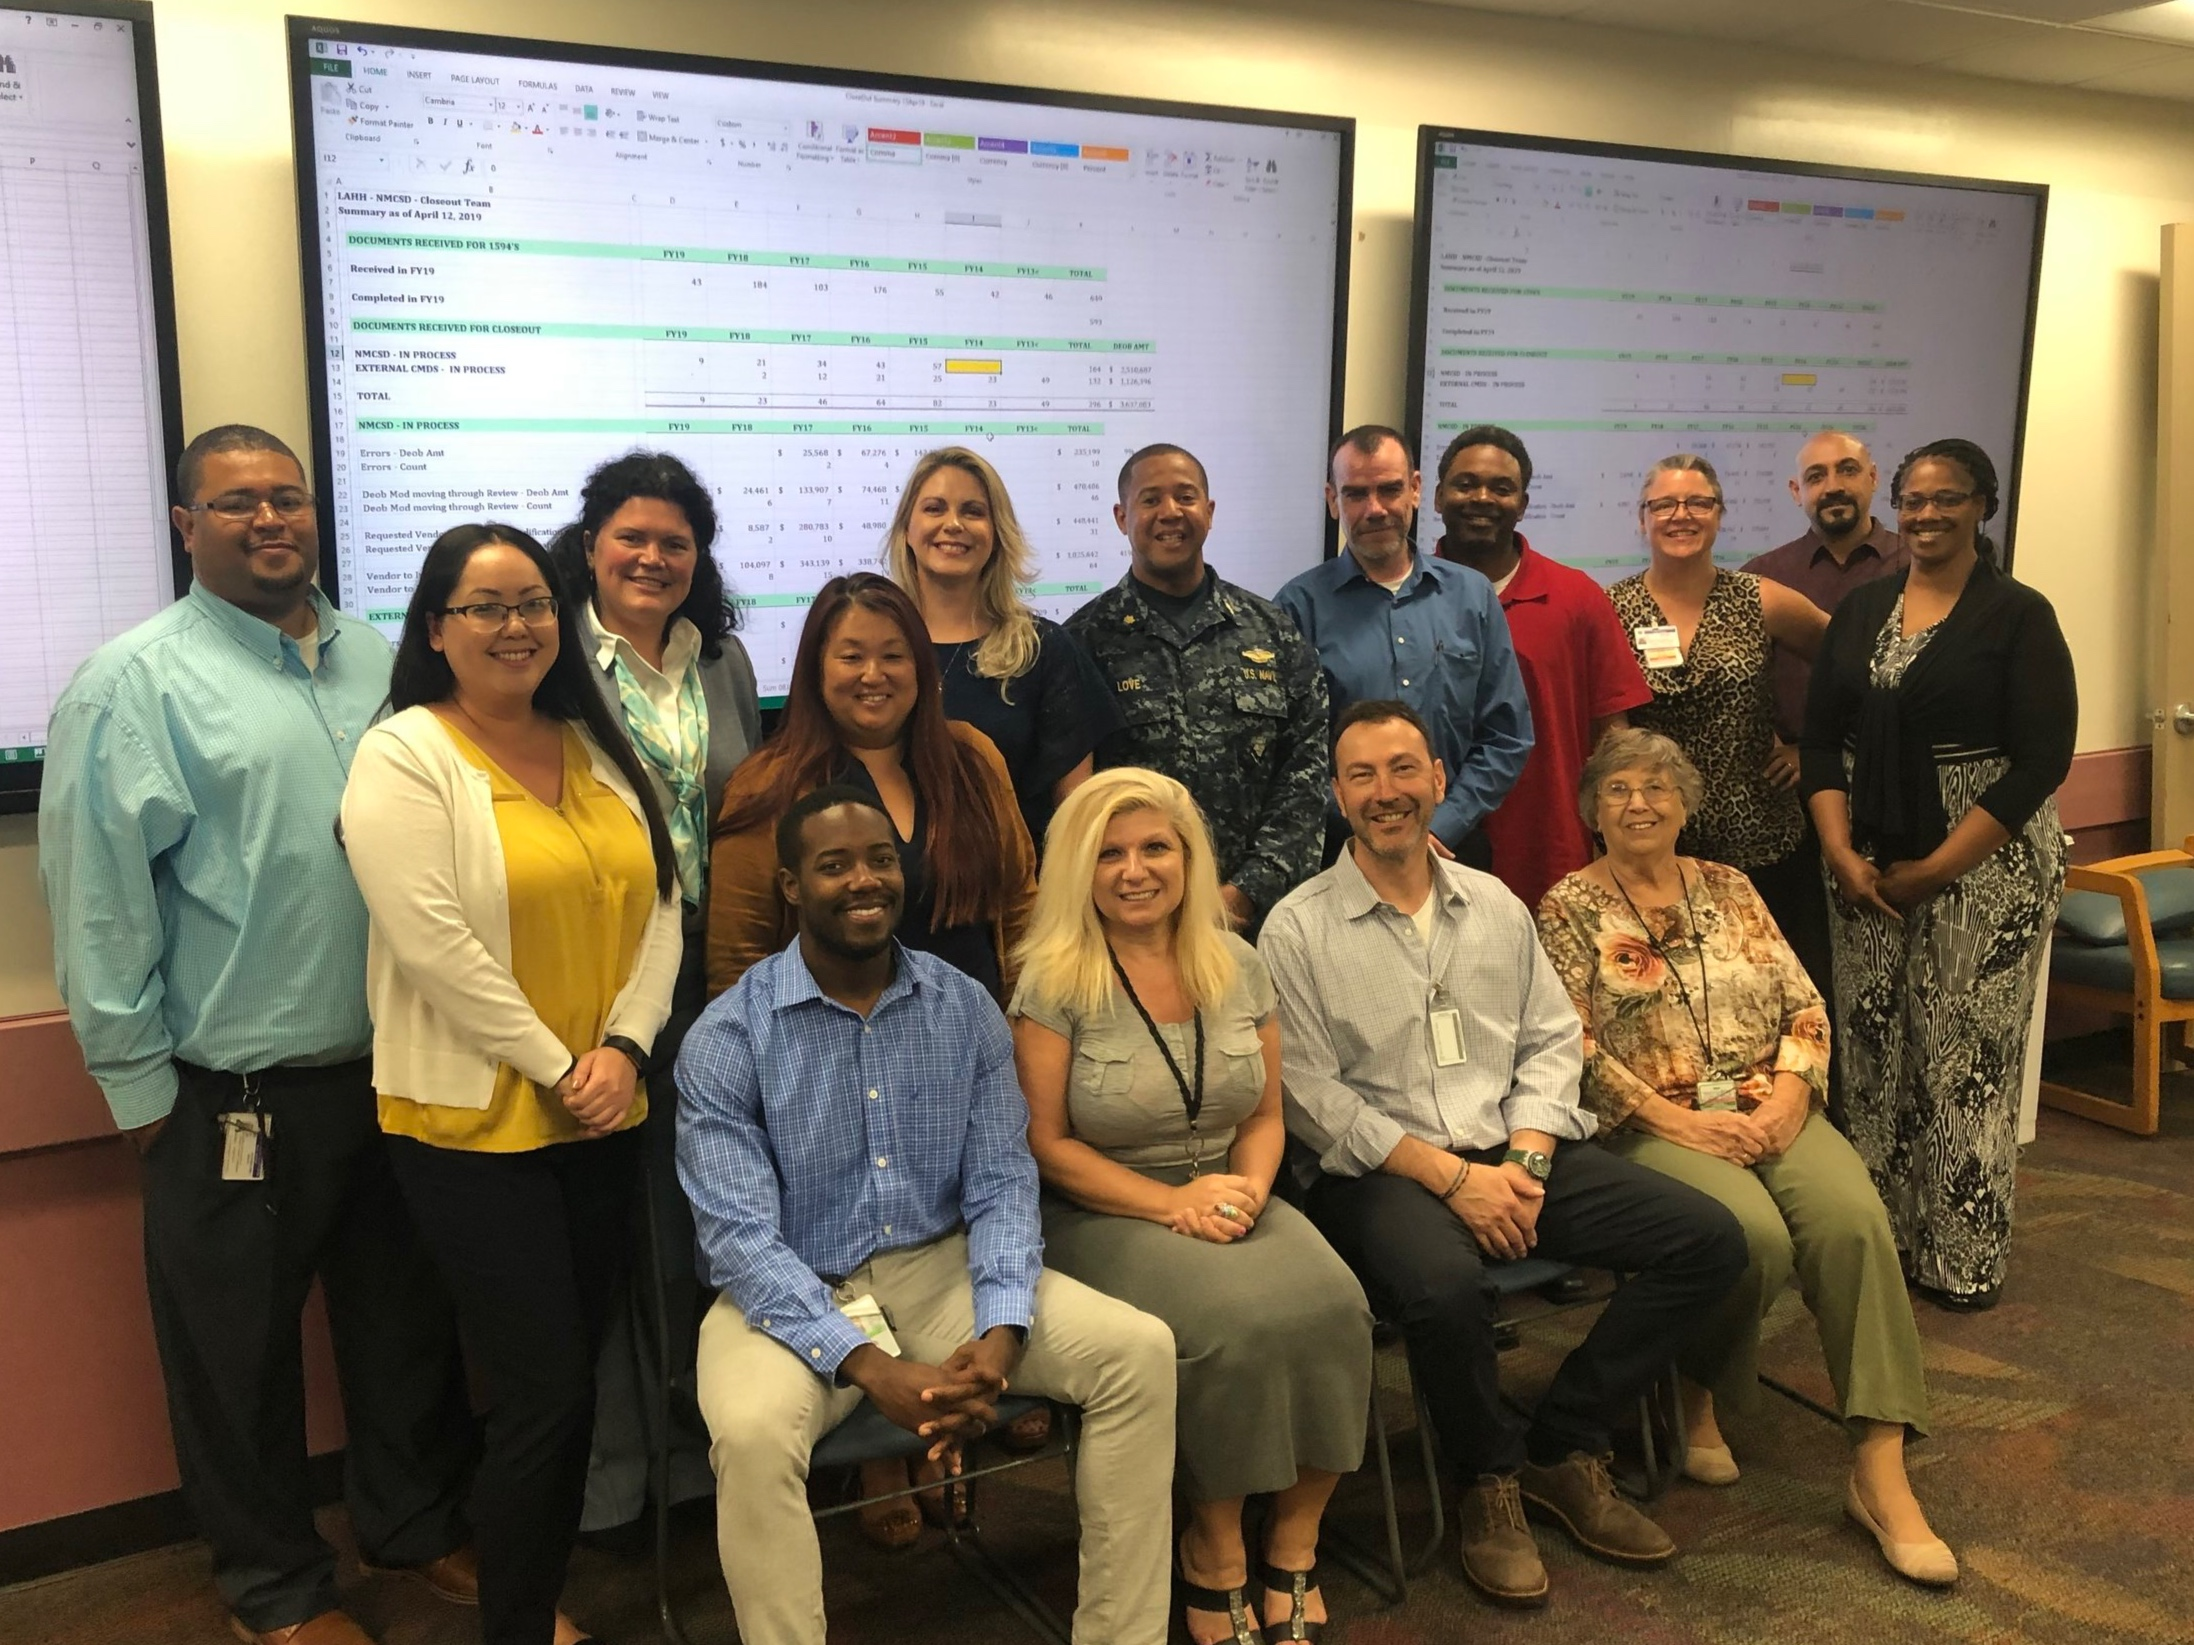 NMCSD+Closeout+team+April+15+2019+Celebrating+FY14+funding+closeout+prior+to+expire.jpg